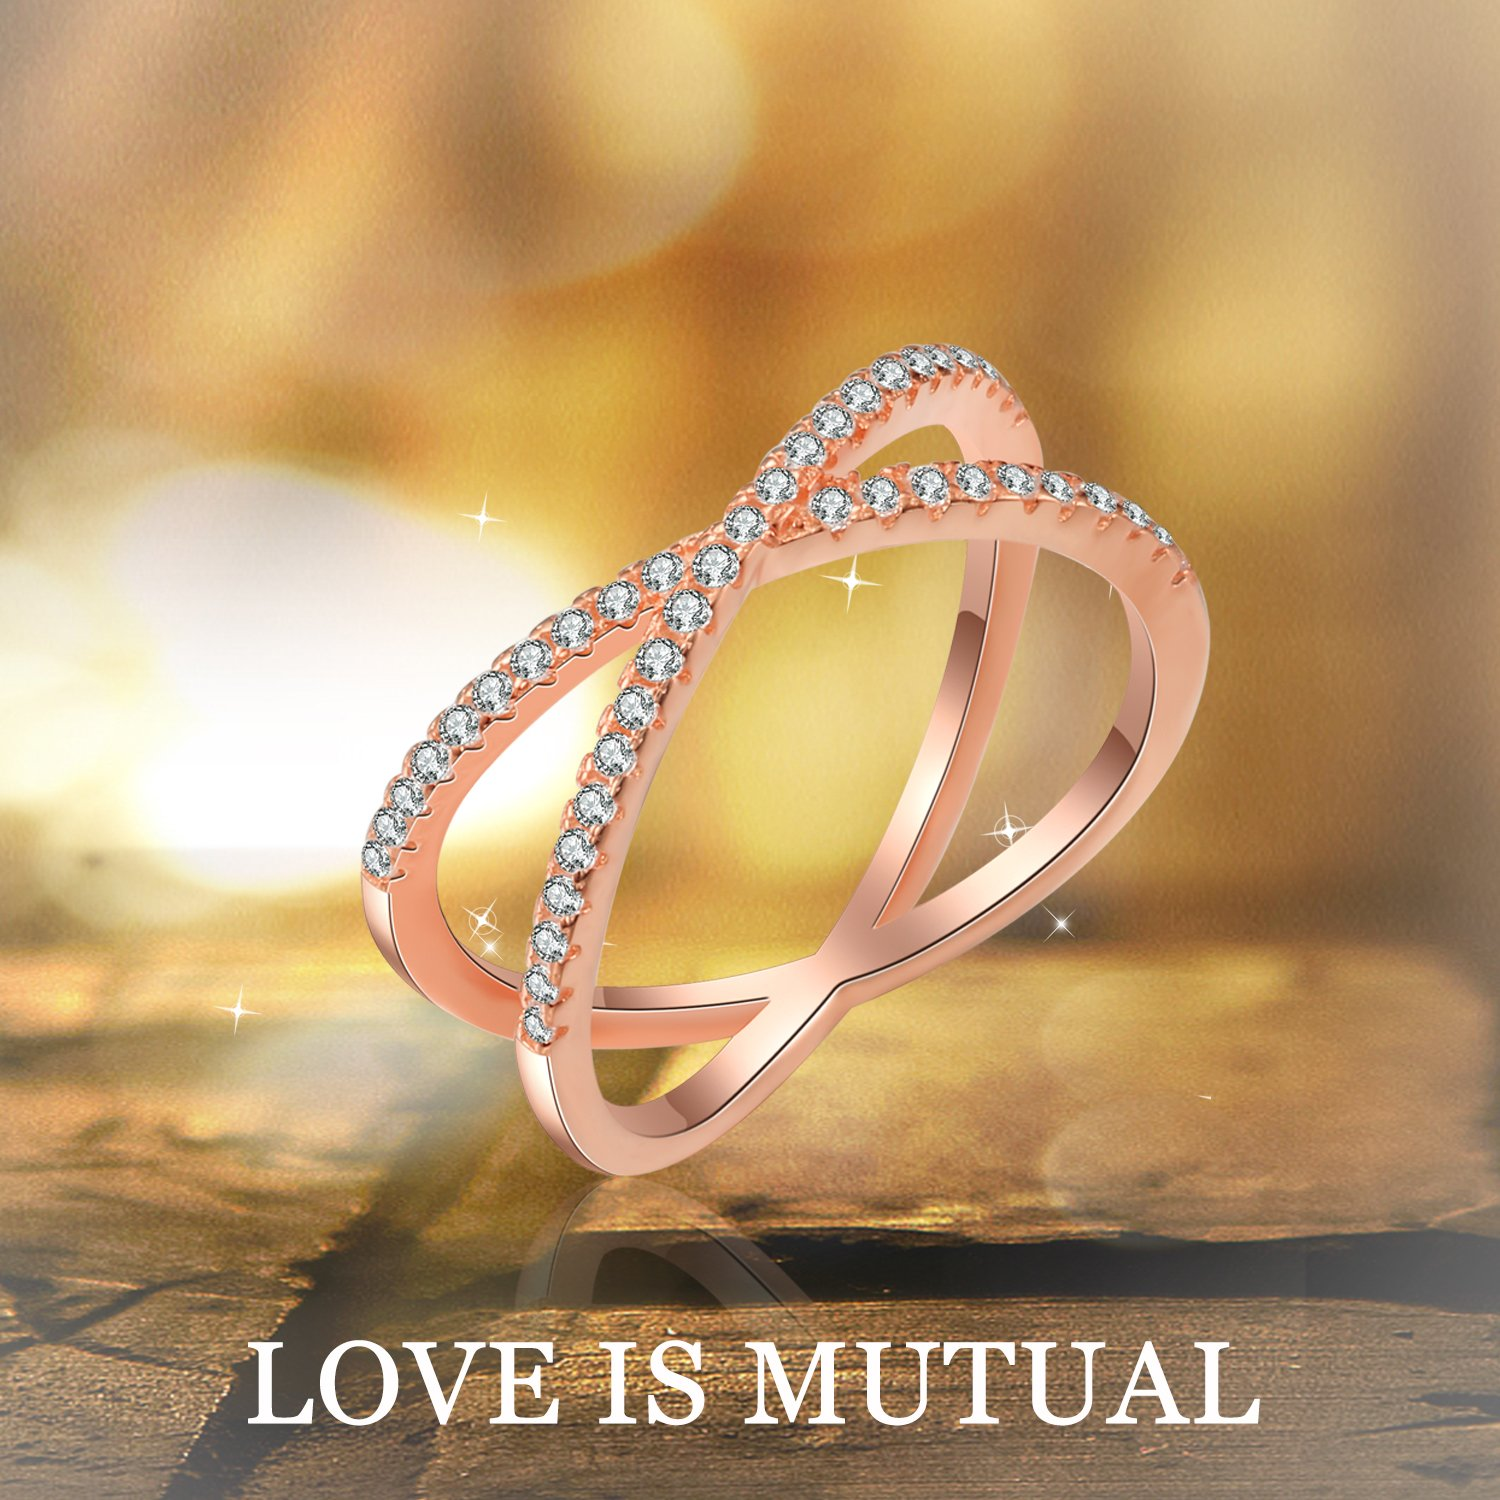 X Ring Sterling Silver, Cubic Zirconia X Criss Cross Ring Women, Size 6-8 (Rose-Gold-Plated-Silver, 7) by SISGEM (Image #6)